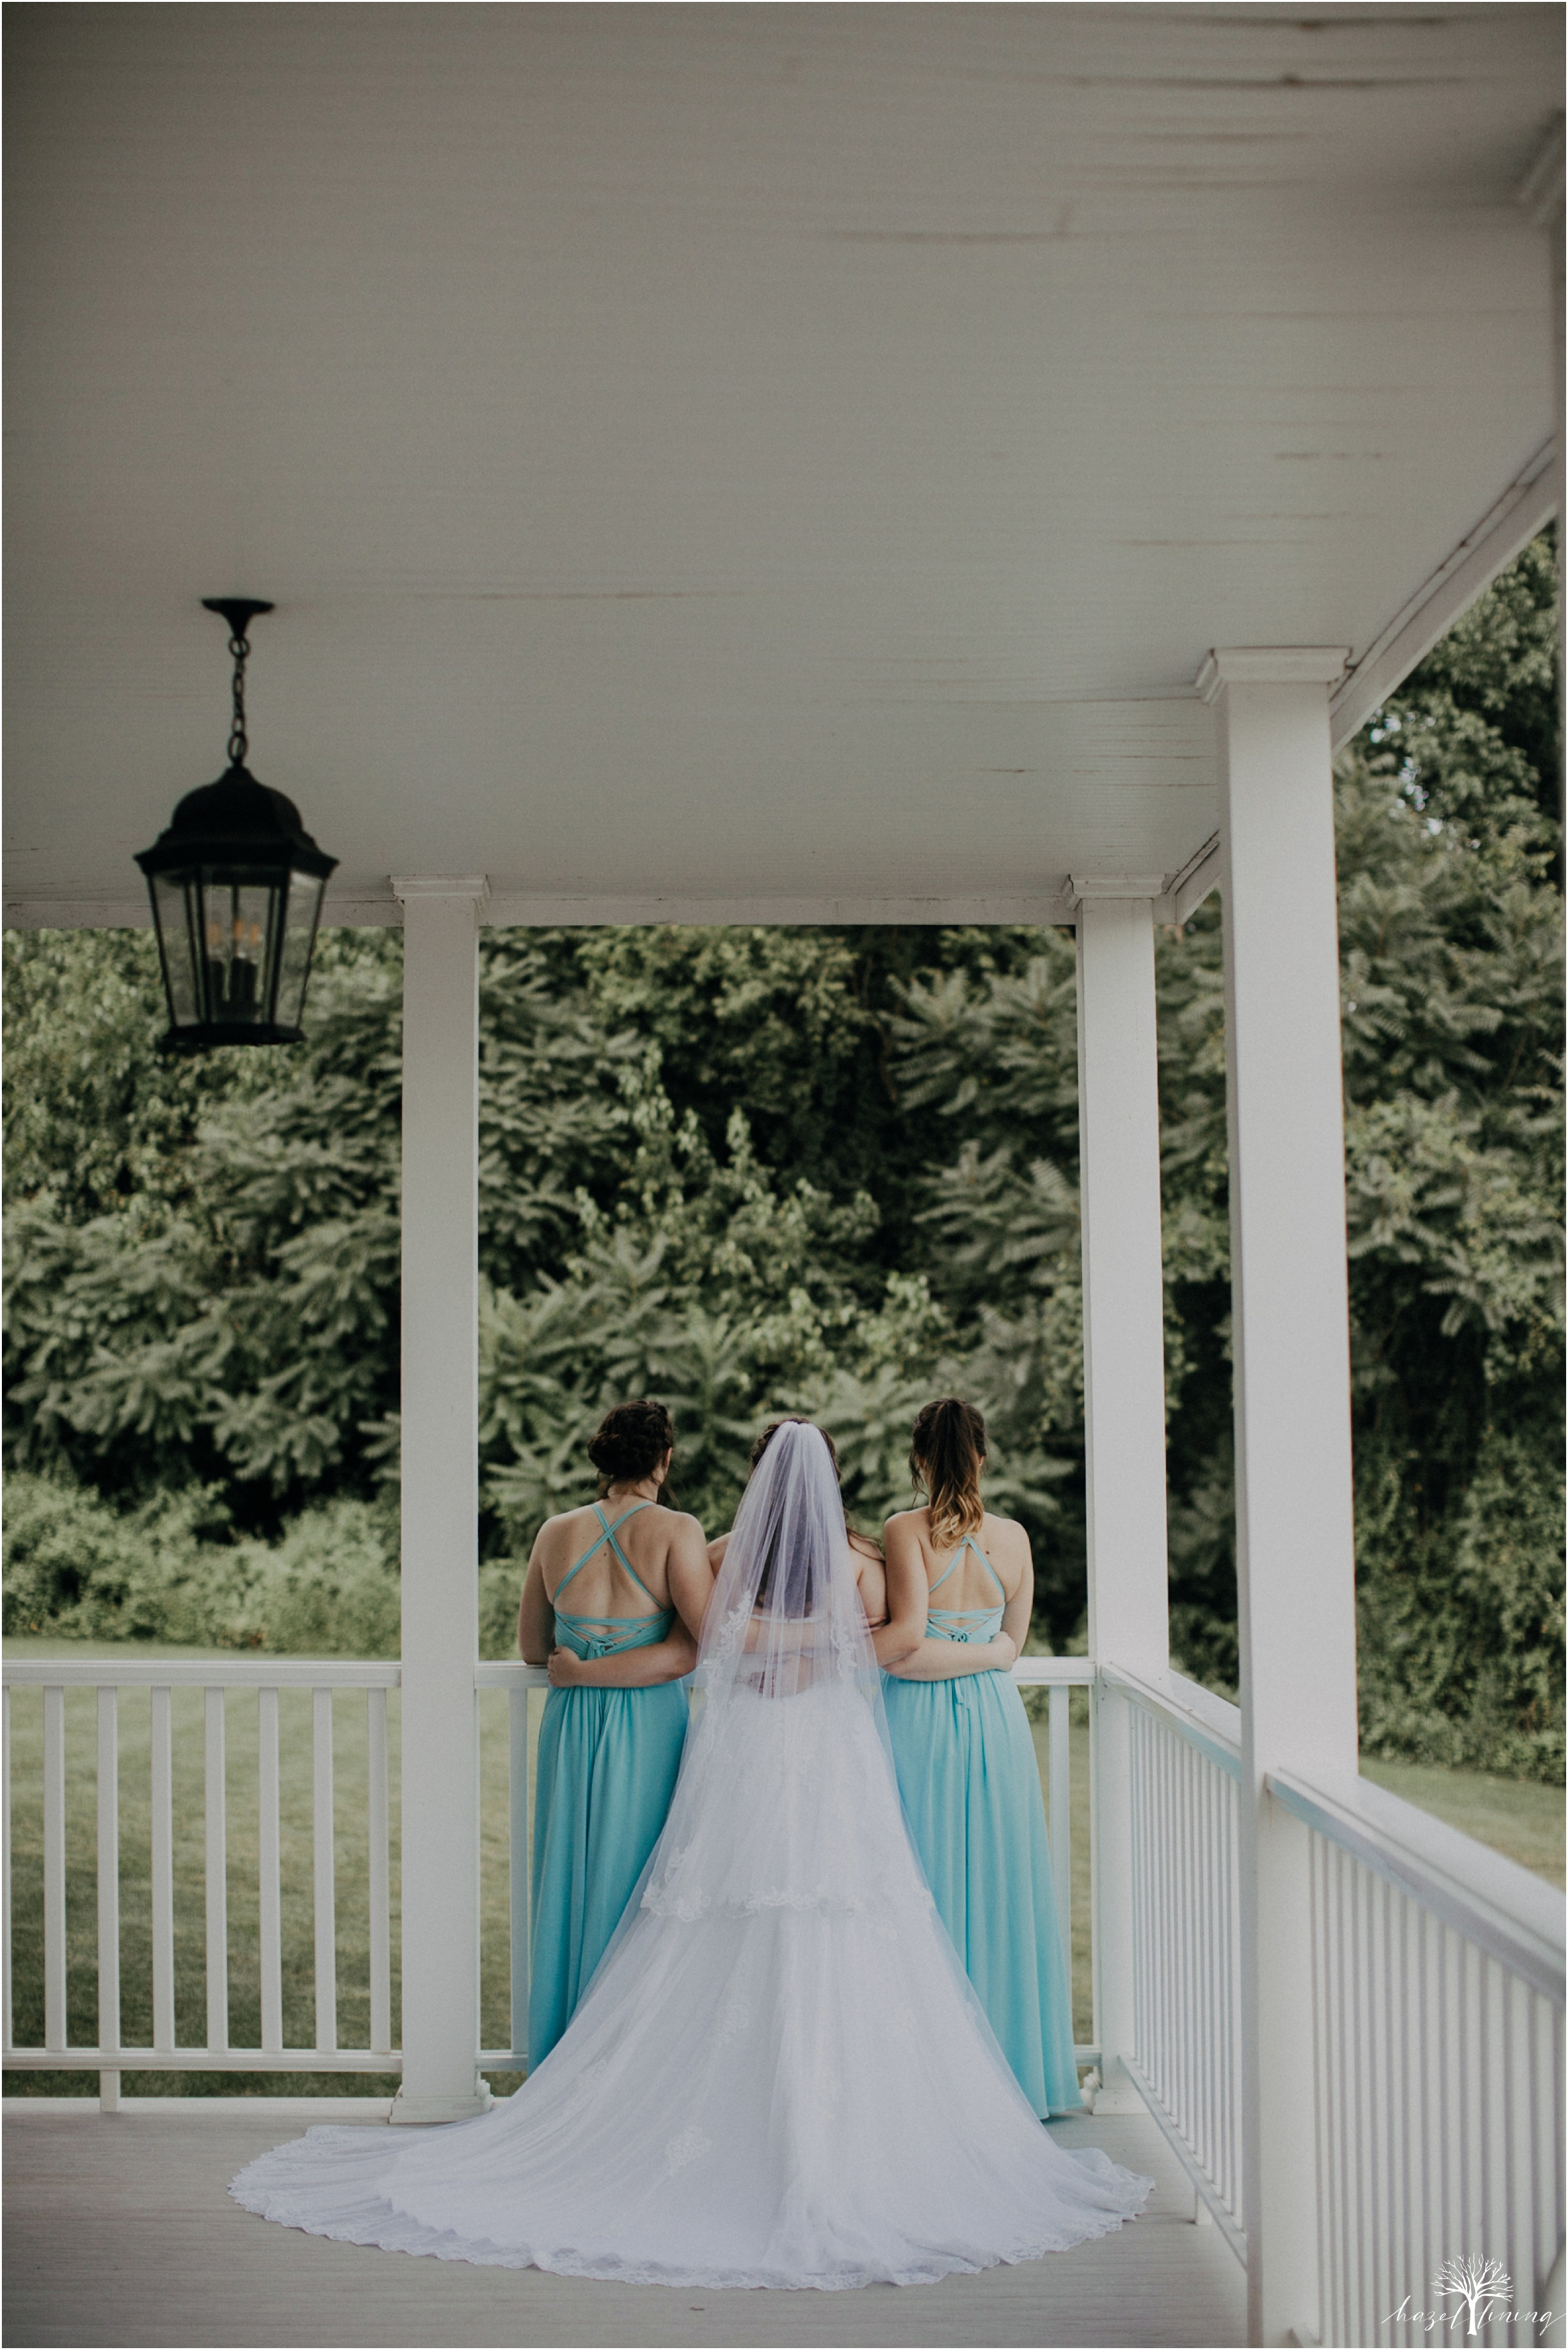 laura-zach-mccaskill-harmony-hall-lebanon-valley-college-summer-wedding-hazel-lining-photography-destination-elopement-wedding-engagement-photography_0043.jpg